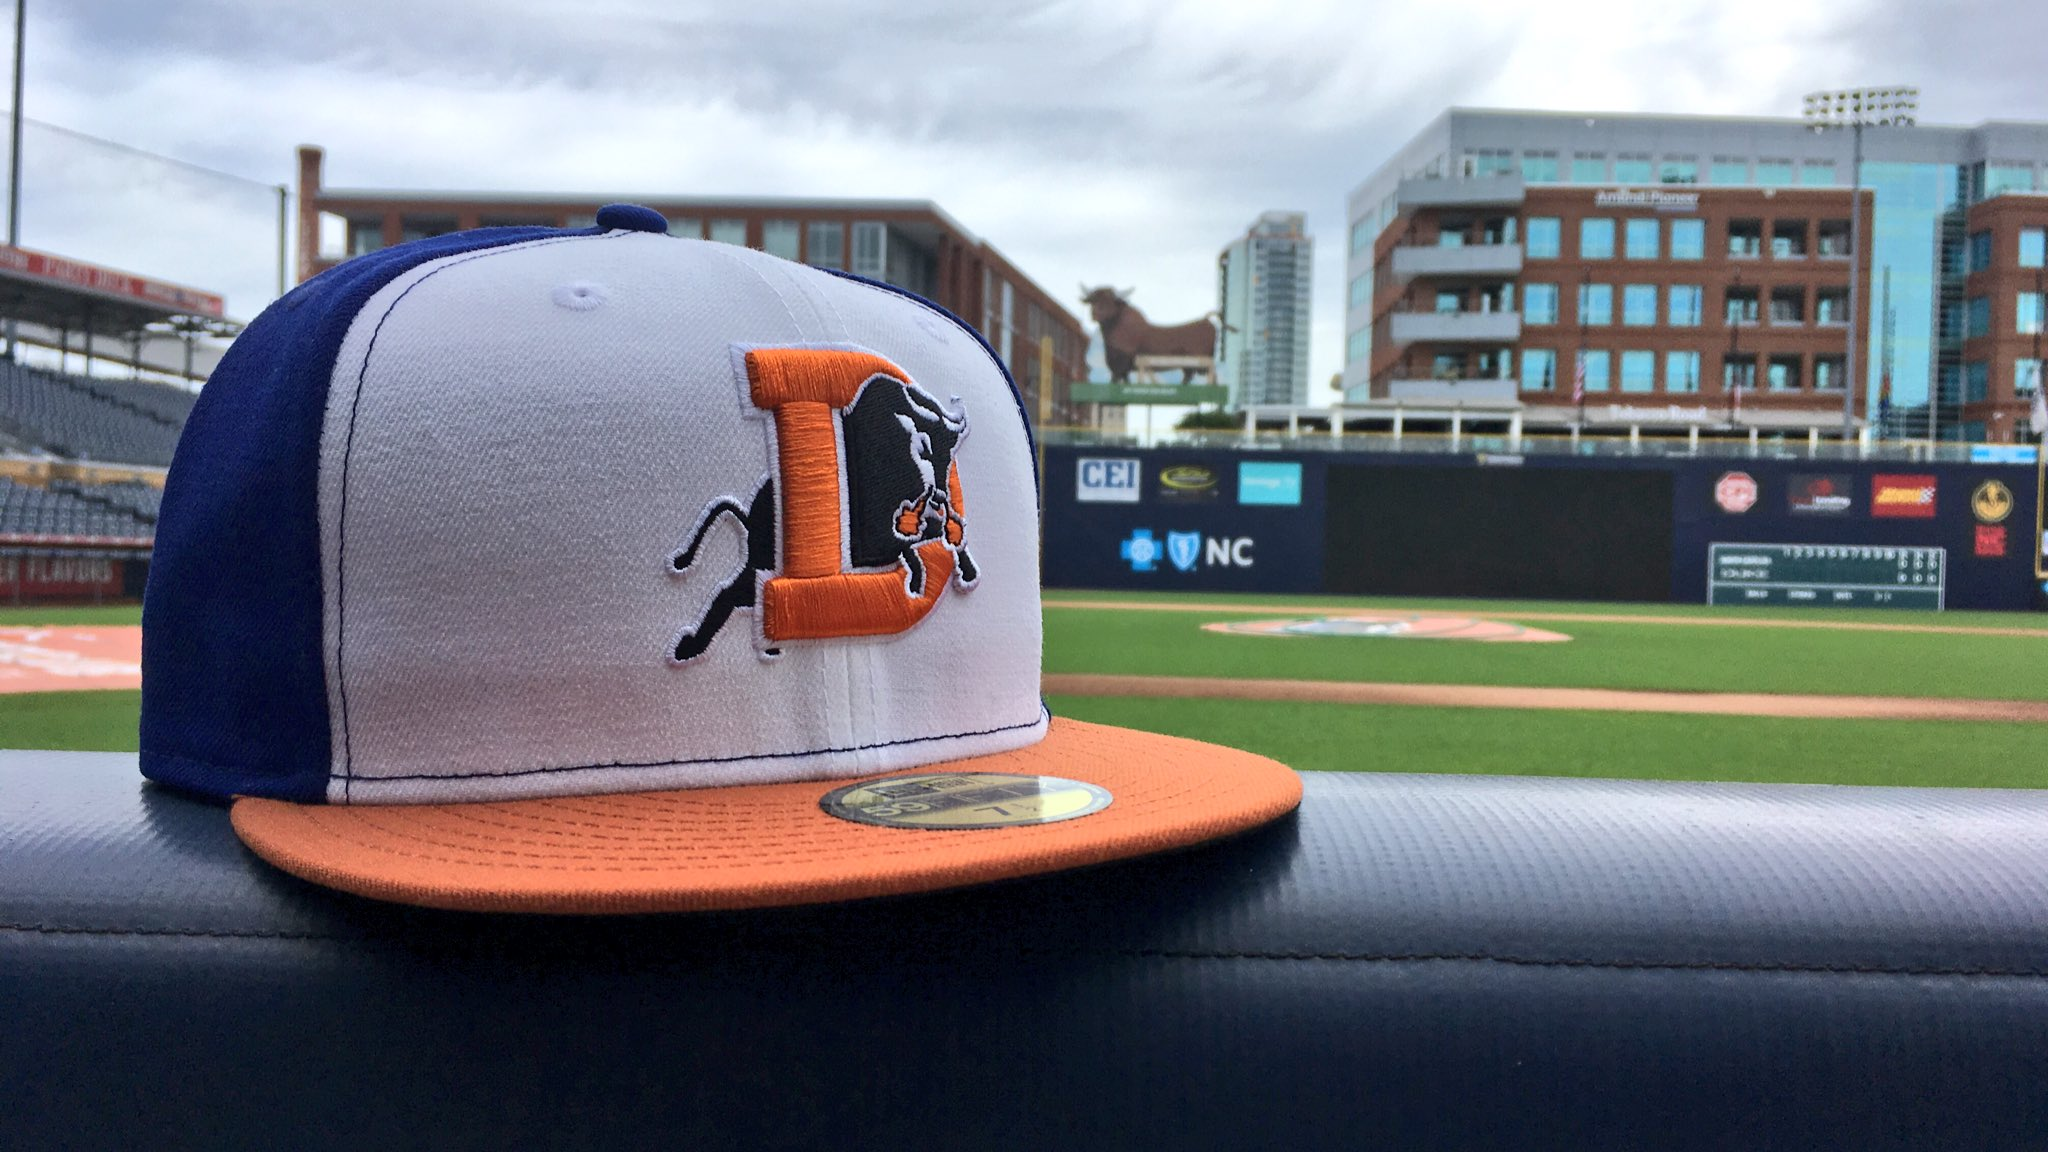 Grab the best hat in Minor League Baseball - you know you want to.   Shop: https://t.co/sn3fPdW7b2 https://t.co/9FtY89hBCN